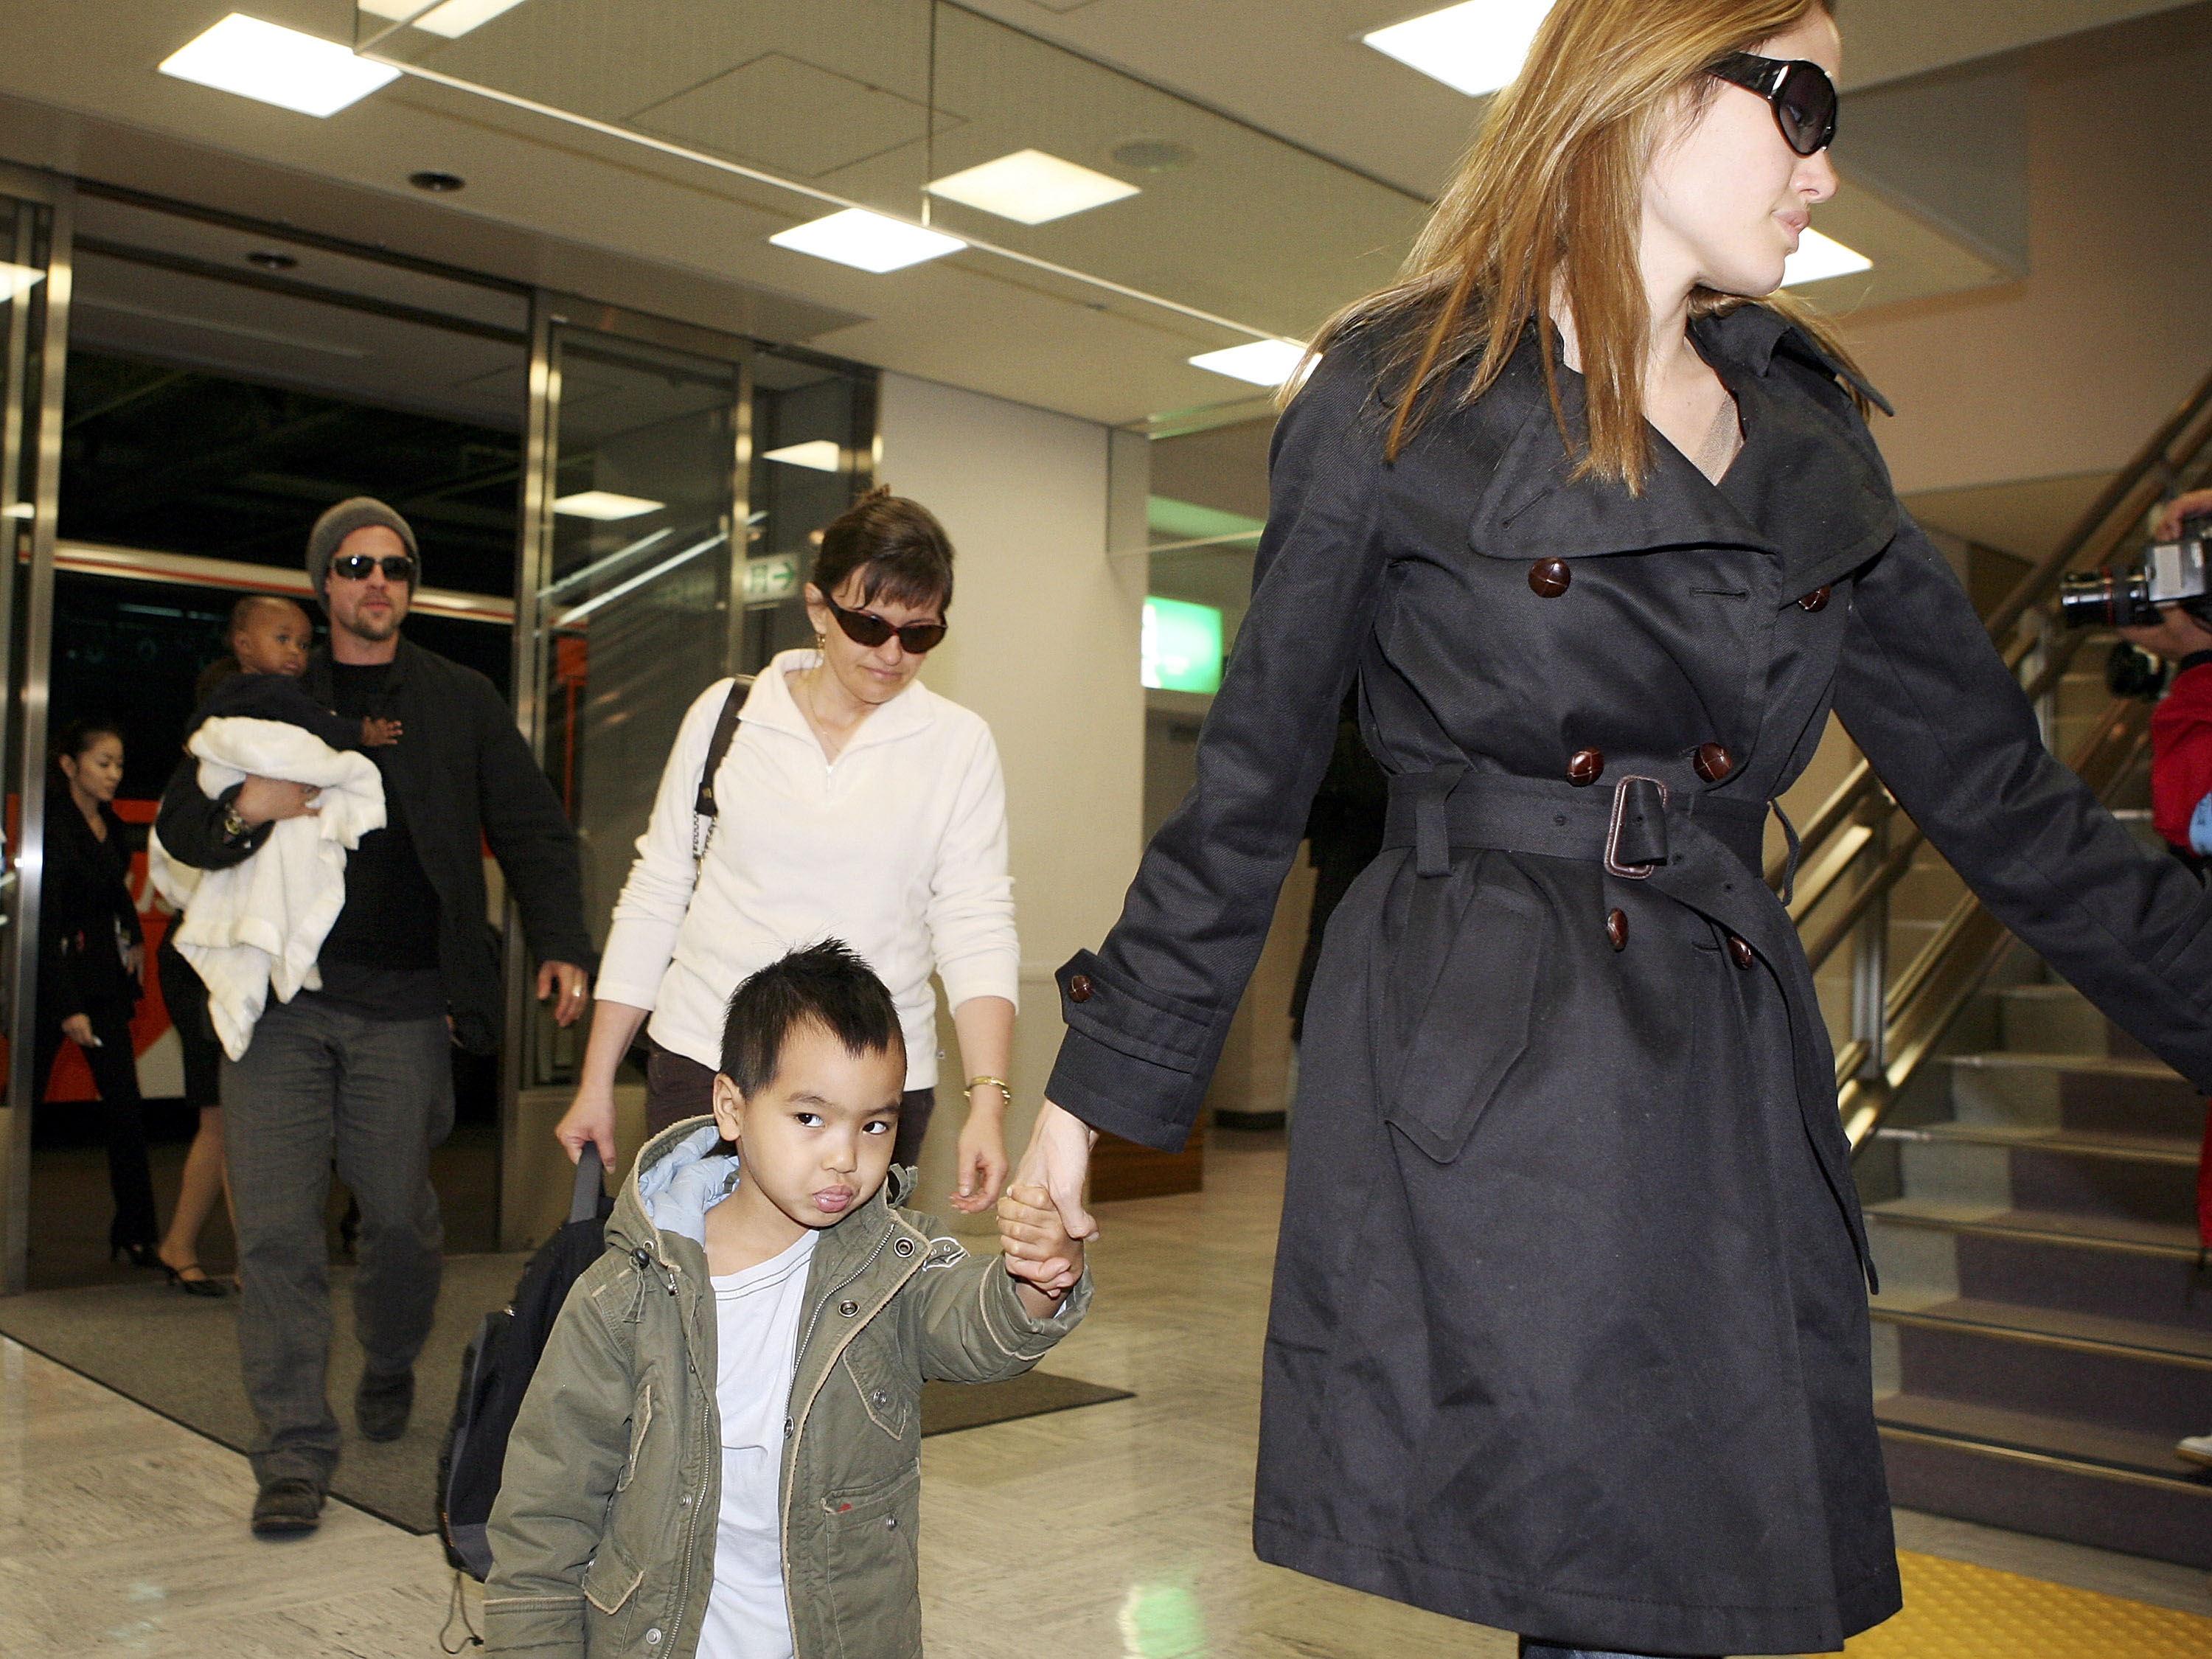 Actor Brad Pitt and actress Angelina Jolie arrive with Jolie's children Zahara Marley Jolie and Maddox Jolie at the New Tokyo International Airport on November 27, 2005, in Narita, Japan. Pitt and Jolie are in Japan to promote a film 'Mr. and Mrs. Smith.' (Getty Images)